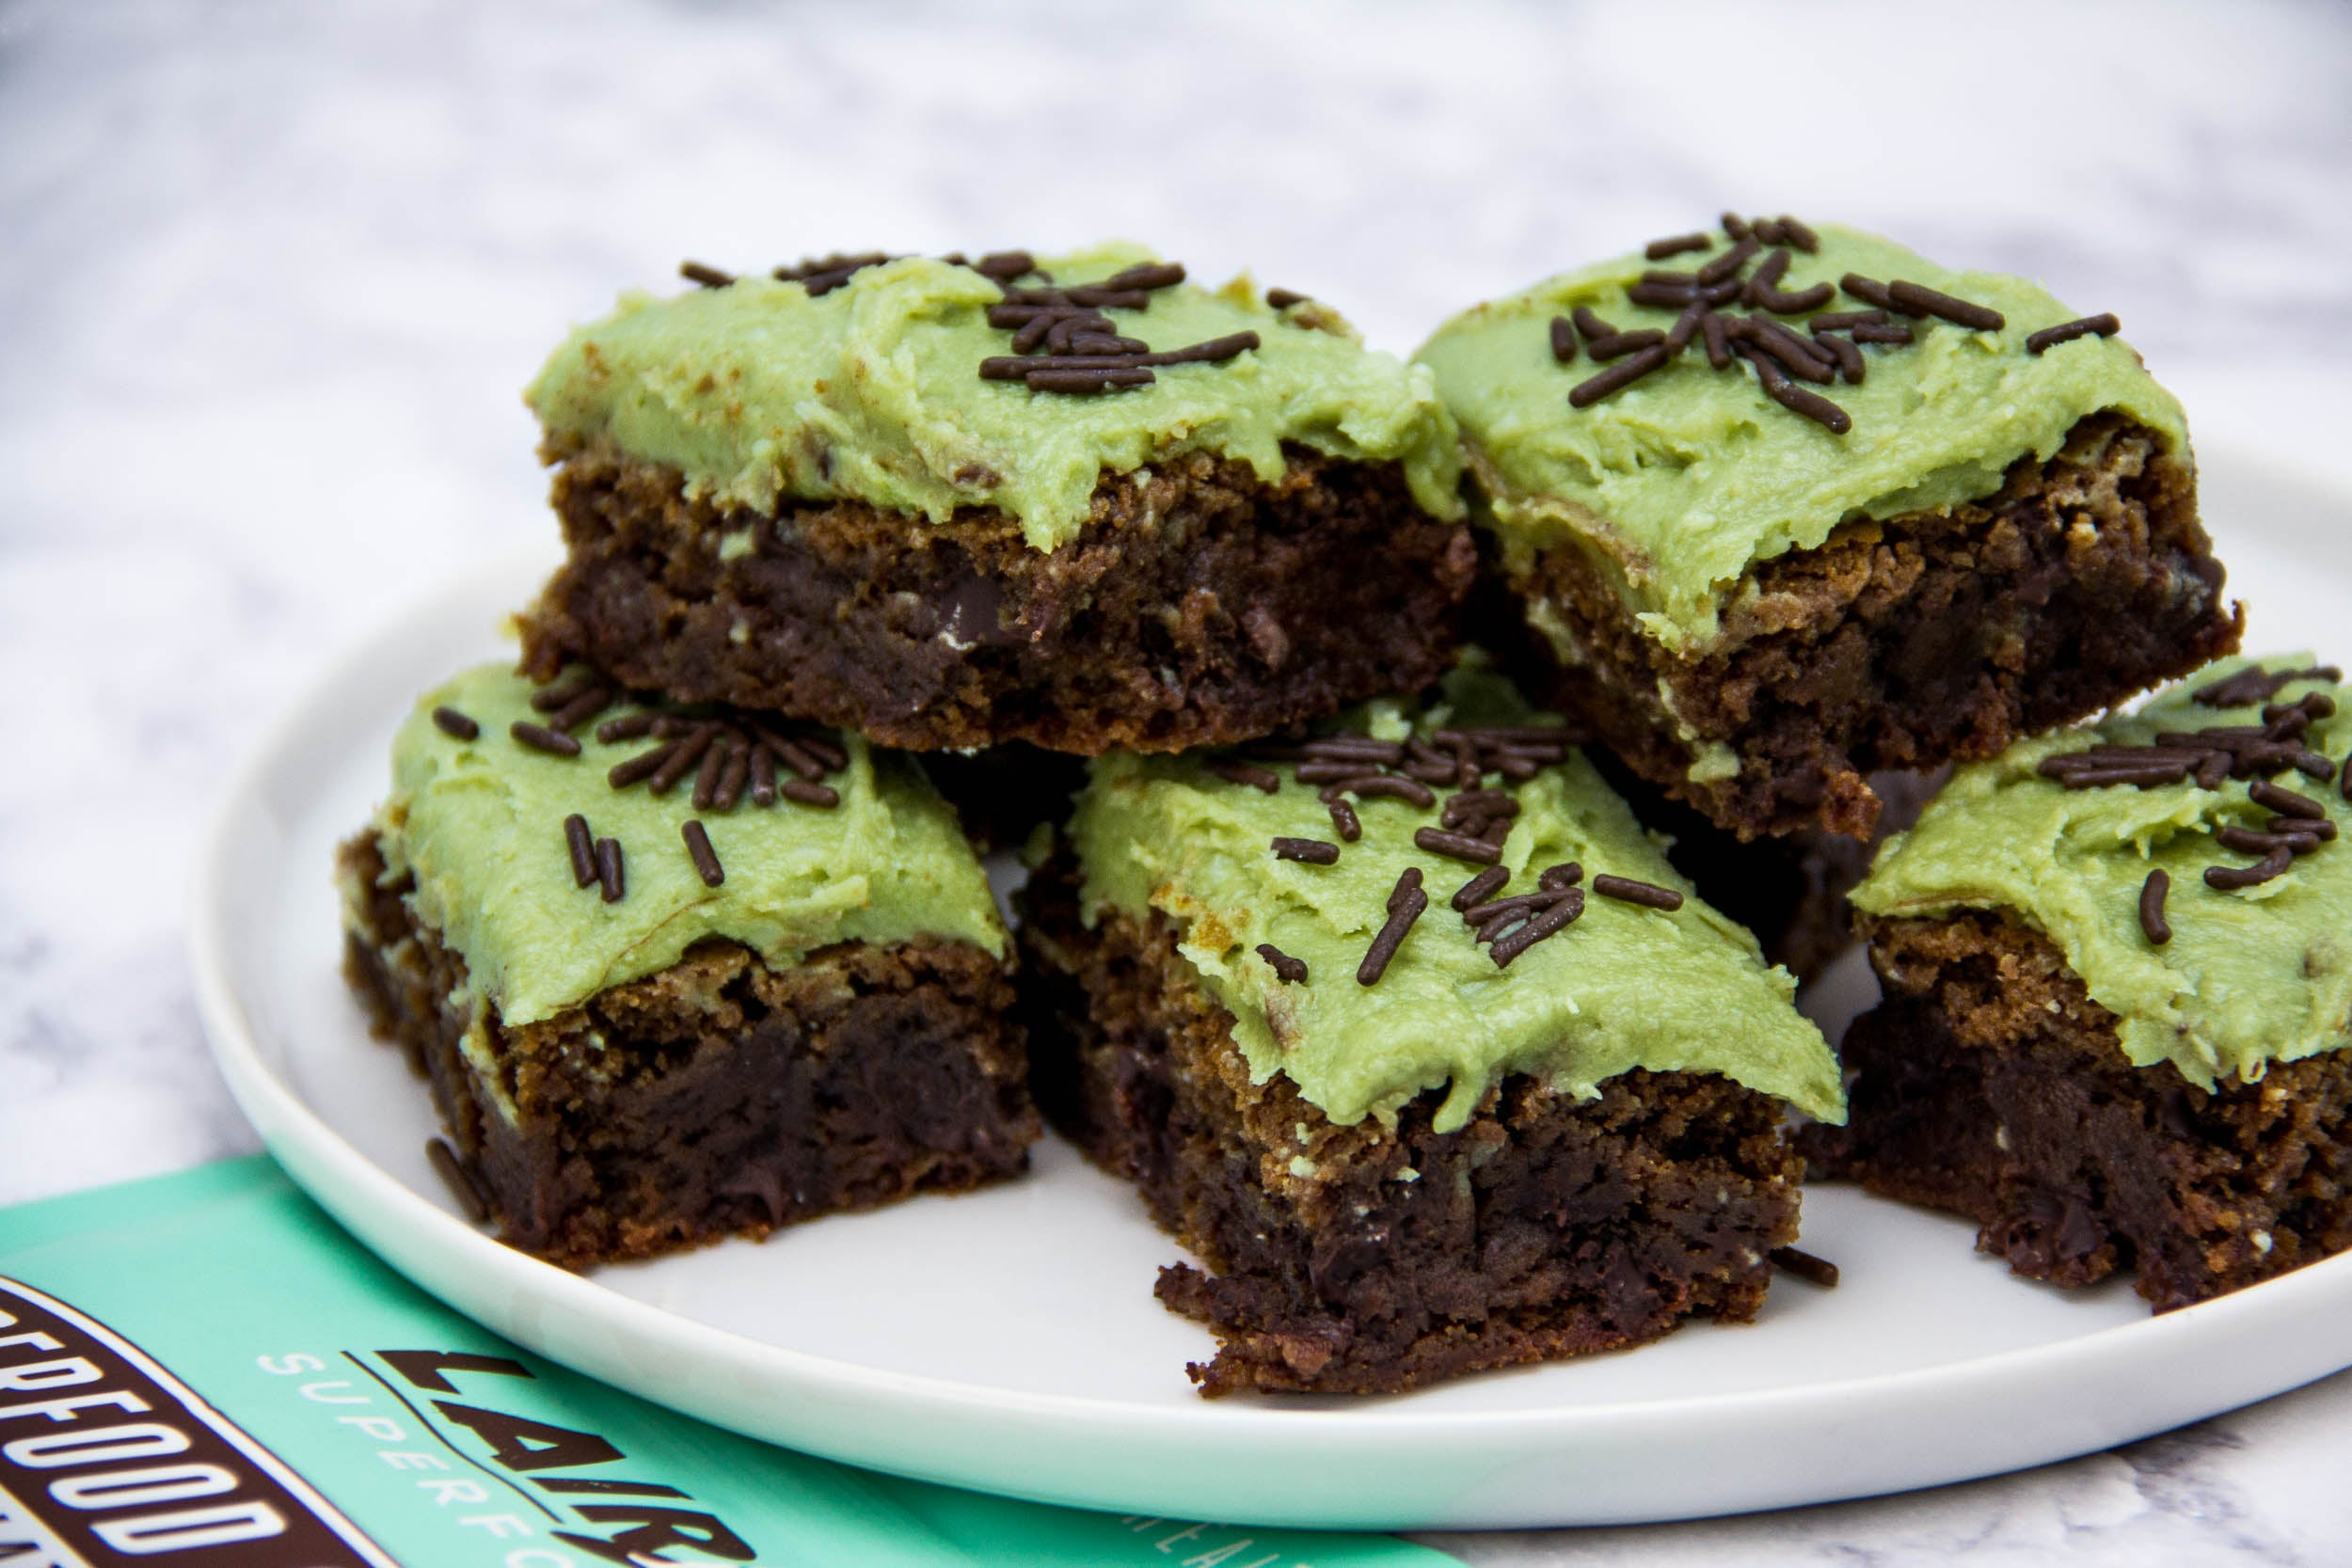 Chocolate Mint Brownies with Matcha Frosting